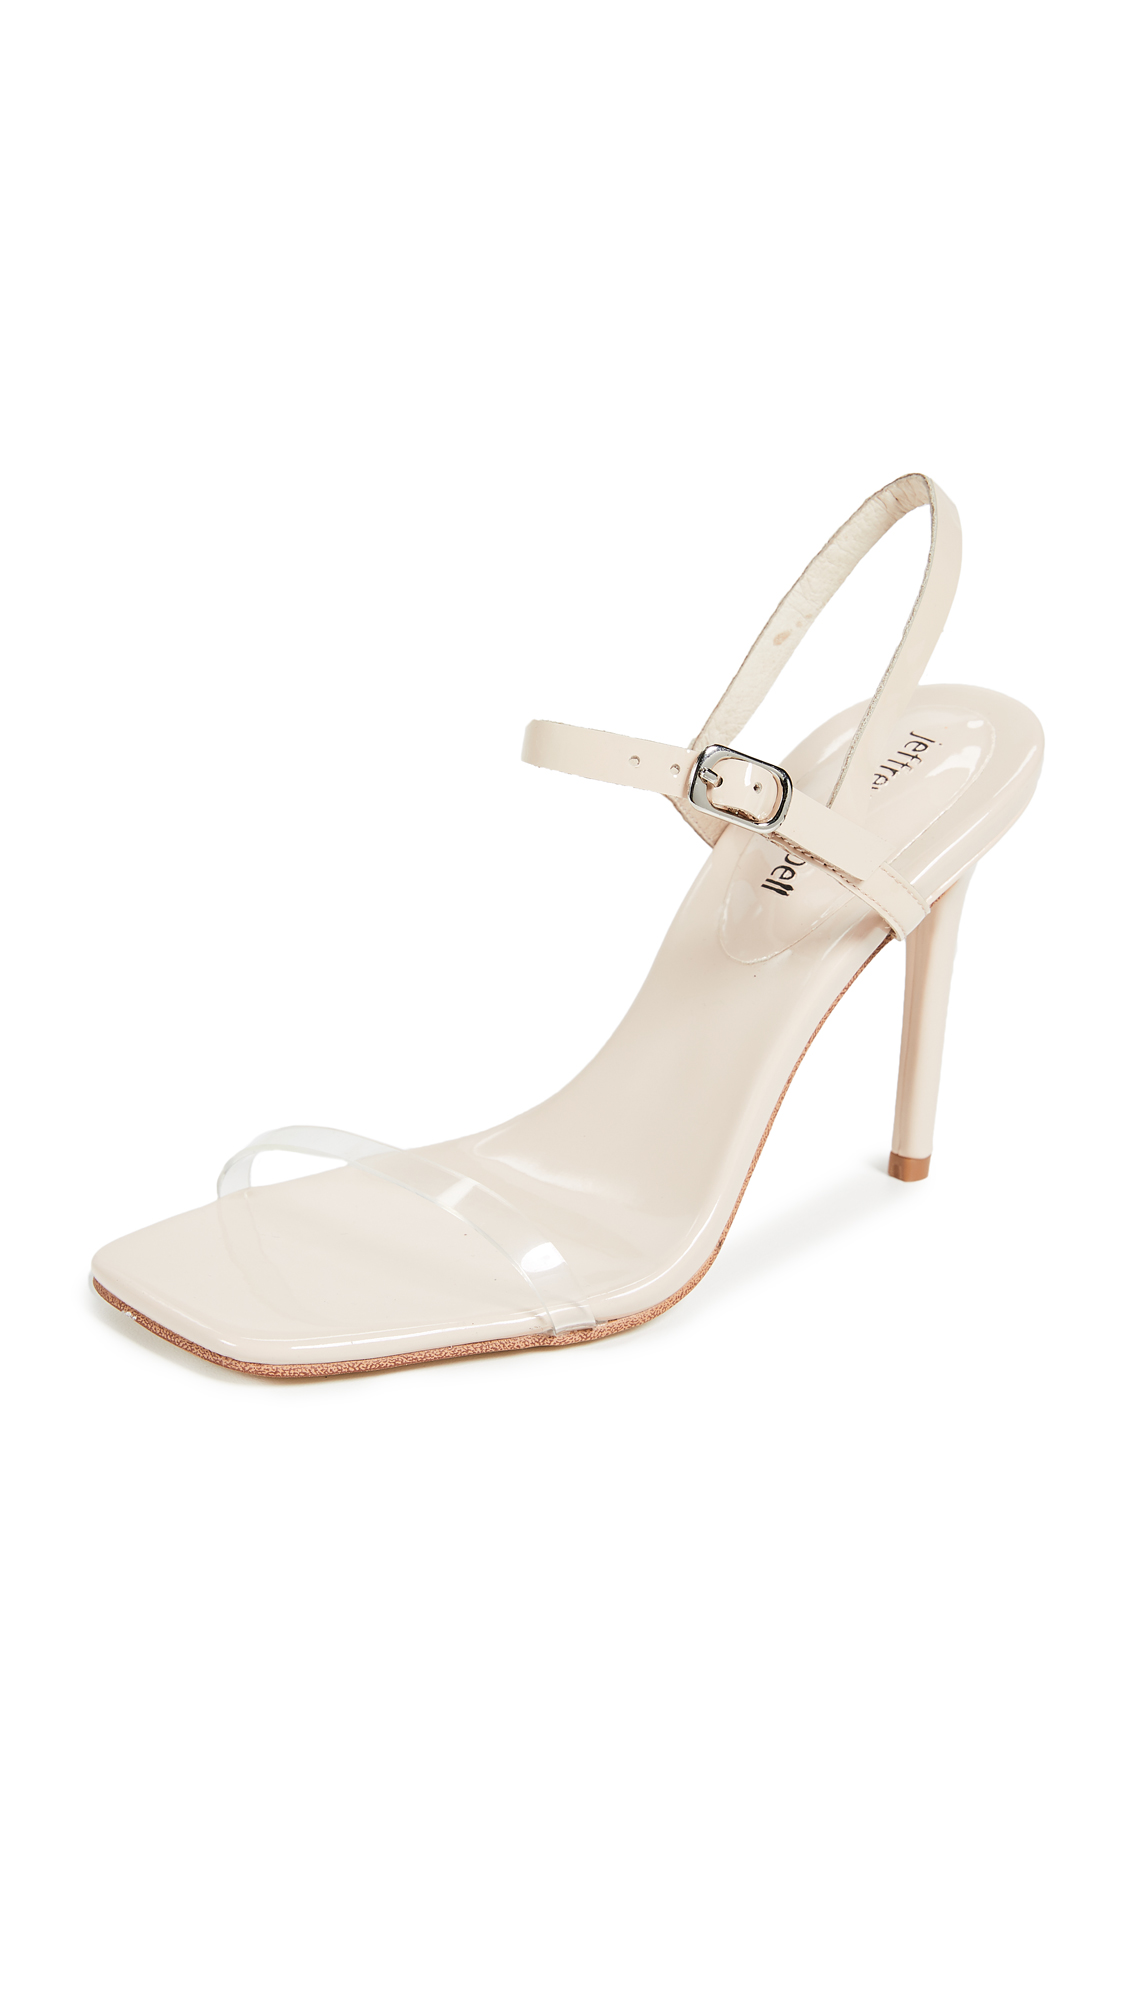 Photo of Jeffrey Campbell Get Busy Strappy Sandals online shoes sales